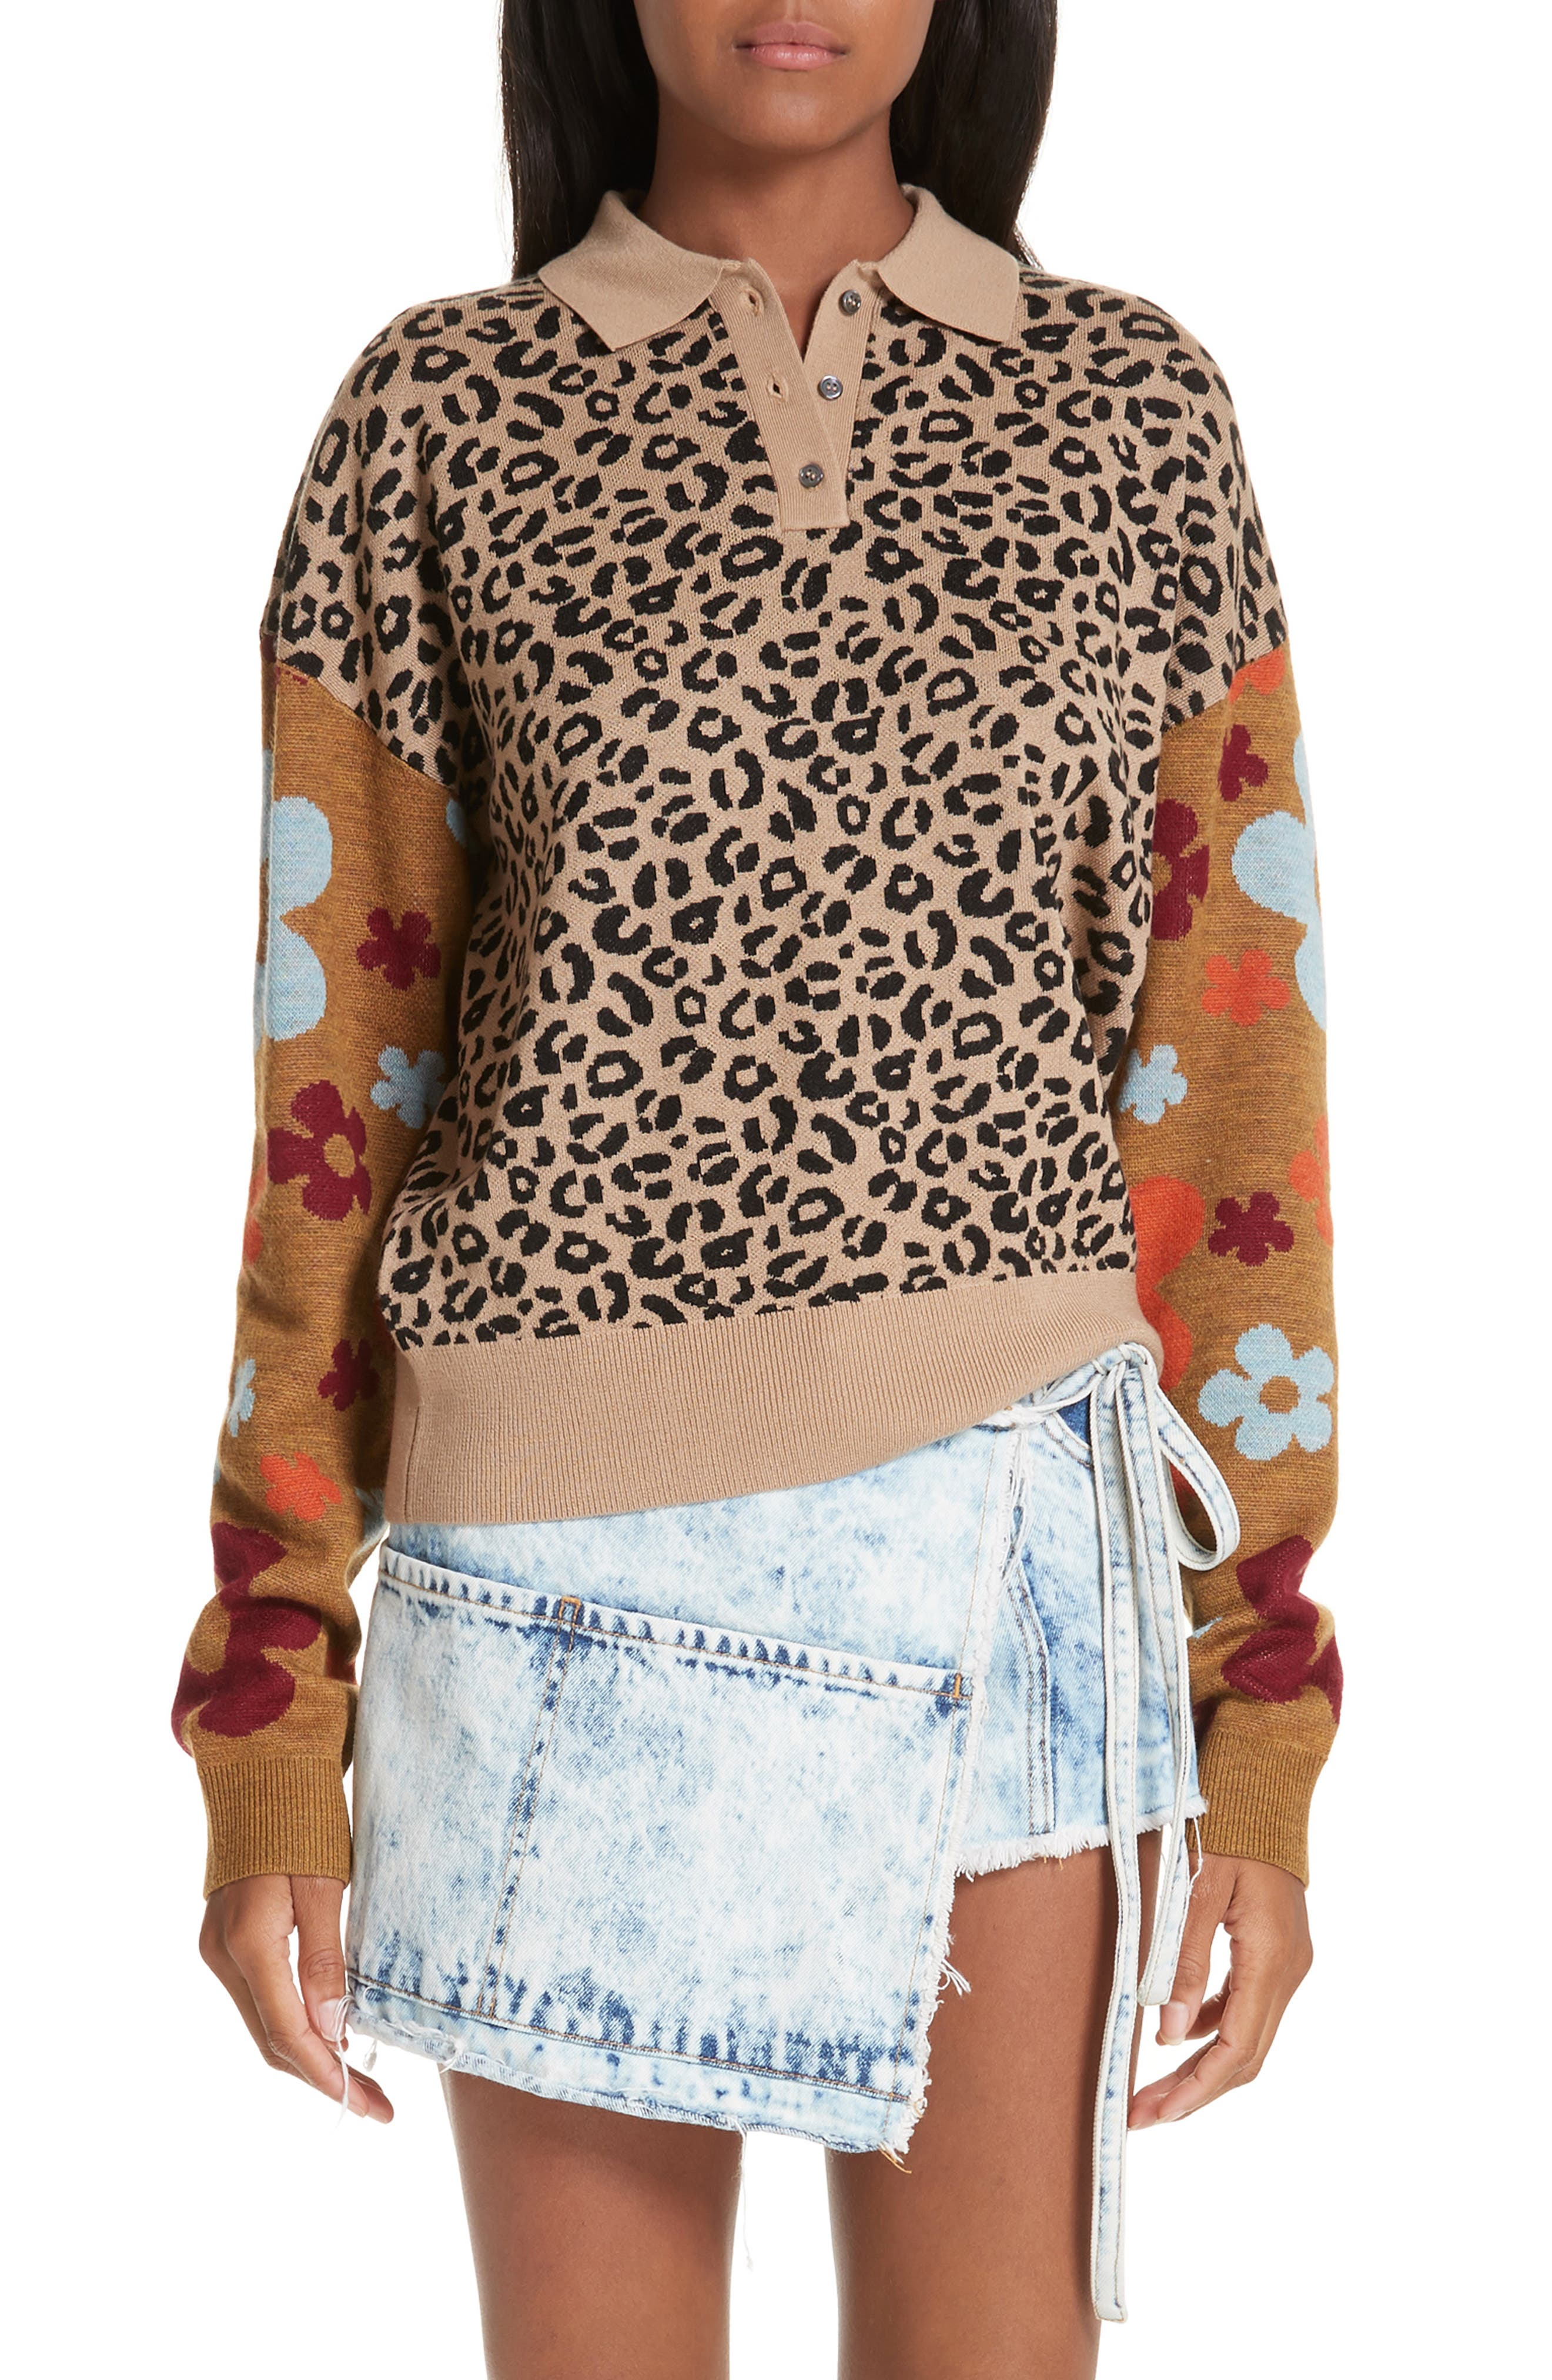 SANDY LIANG Paw Paw Polo Sweater in Leopard Floral